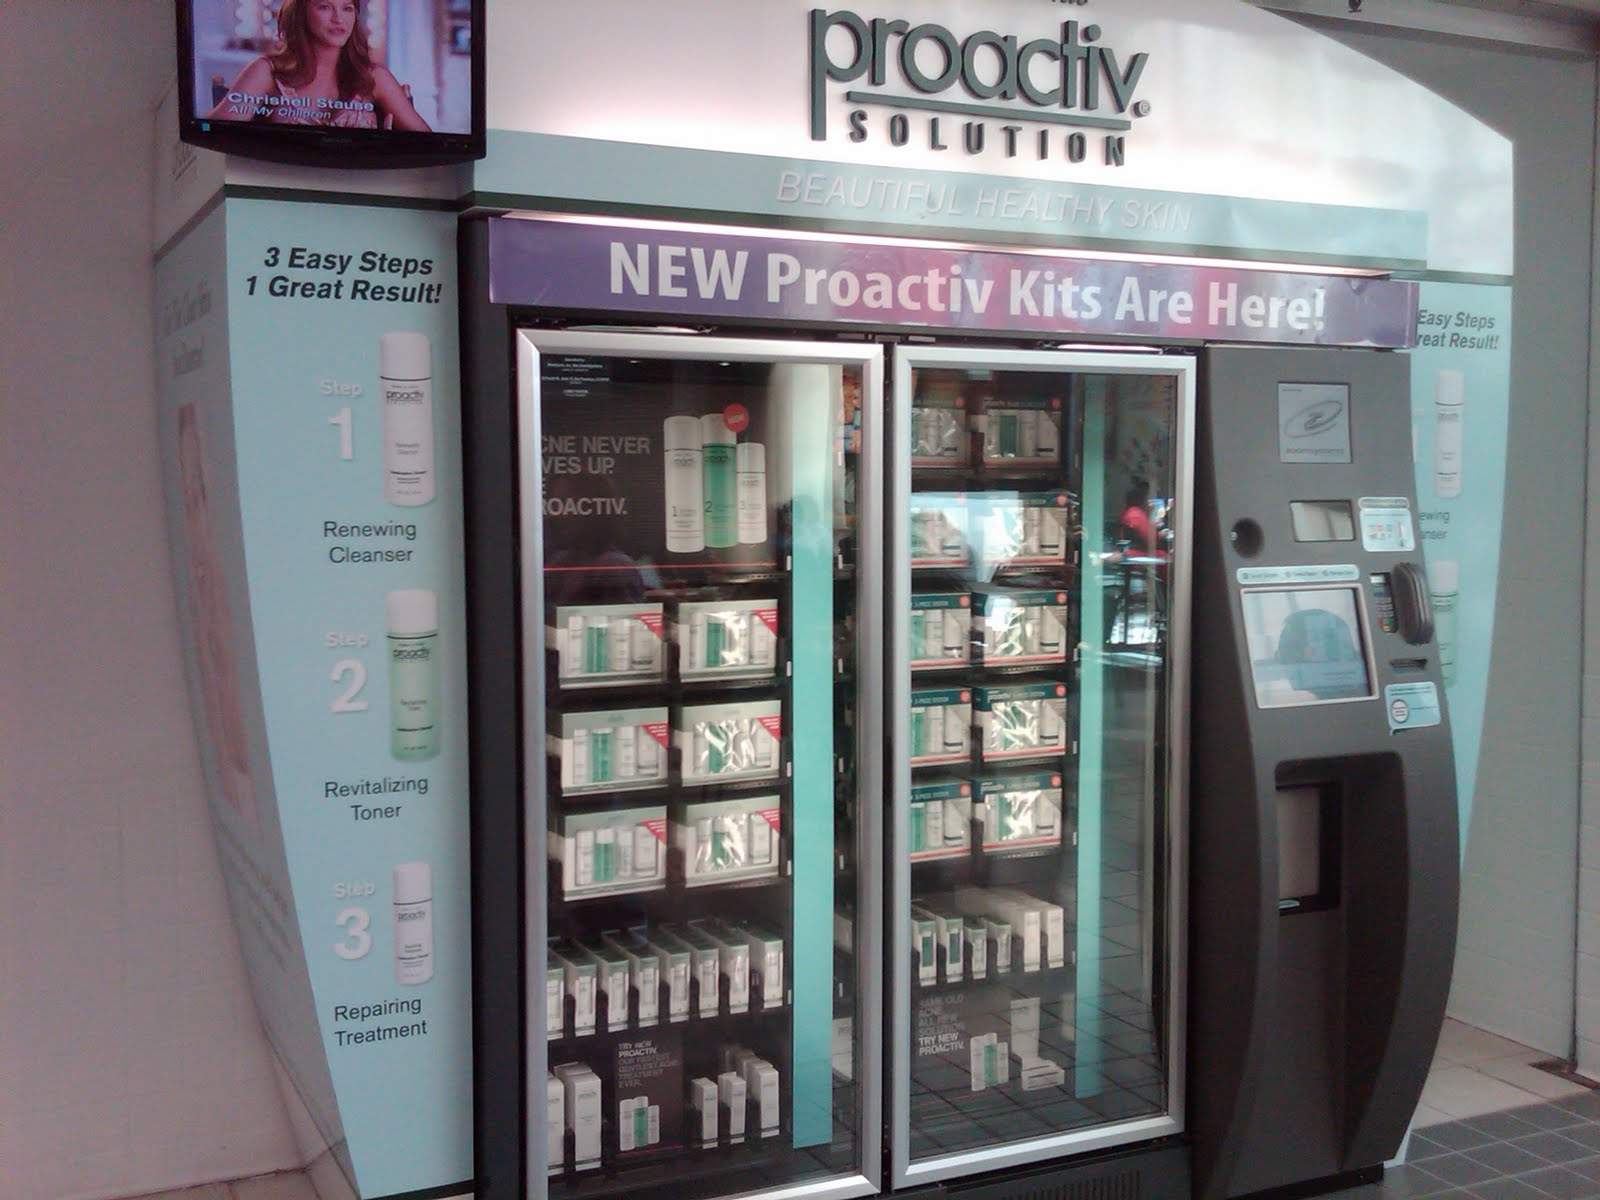 Proactiv Solution ZoomShops offer a quick and convenient way for consumers to purchase America's #1 Acne Treatment. Automated retail brings Proactiv to the locations where consumers shop--and at a substantially lower cost to distributors than the traditional manned kiosk.